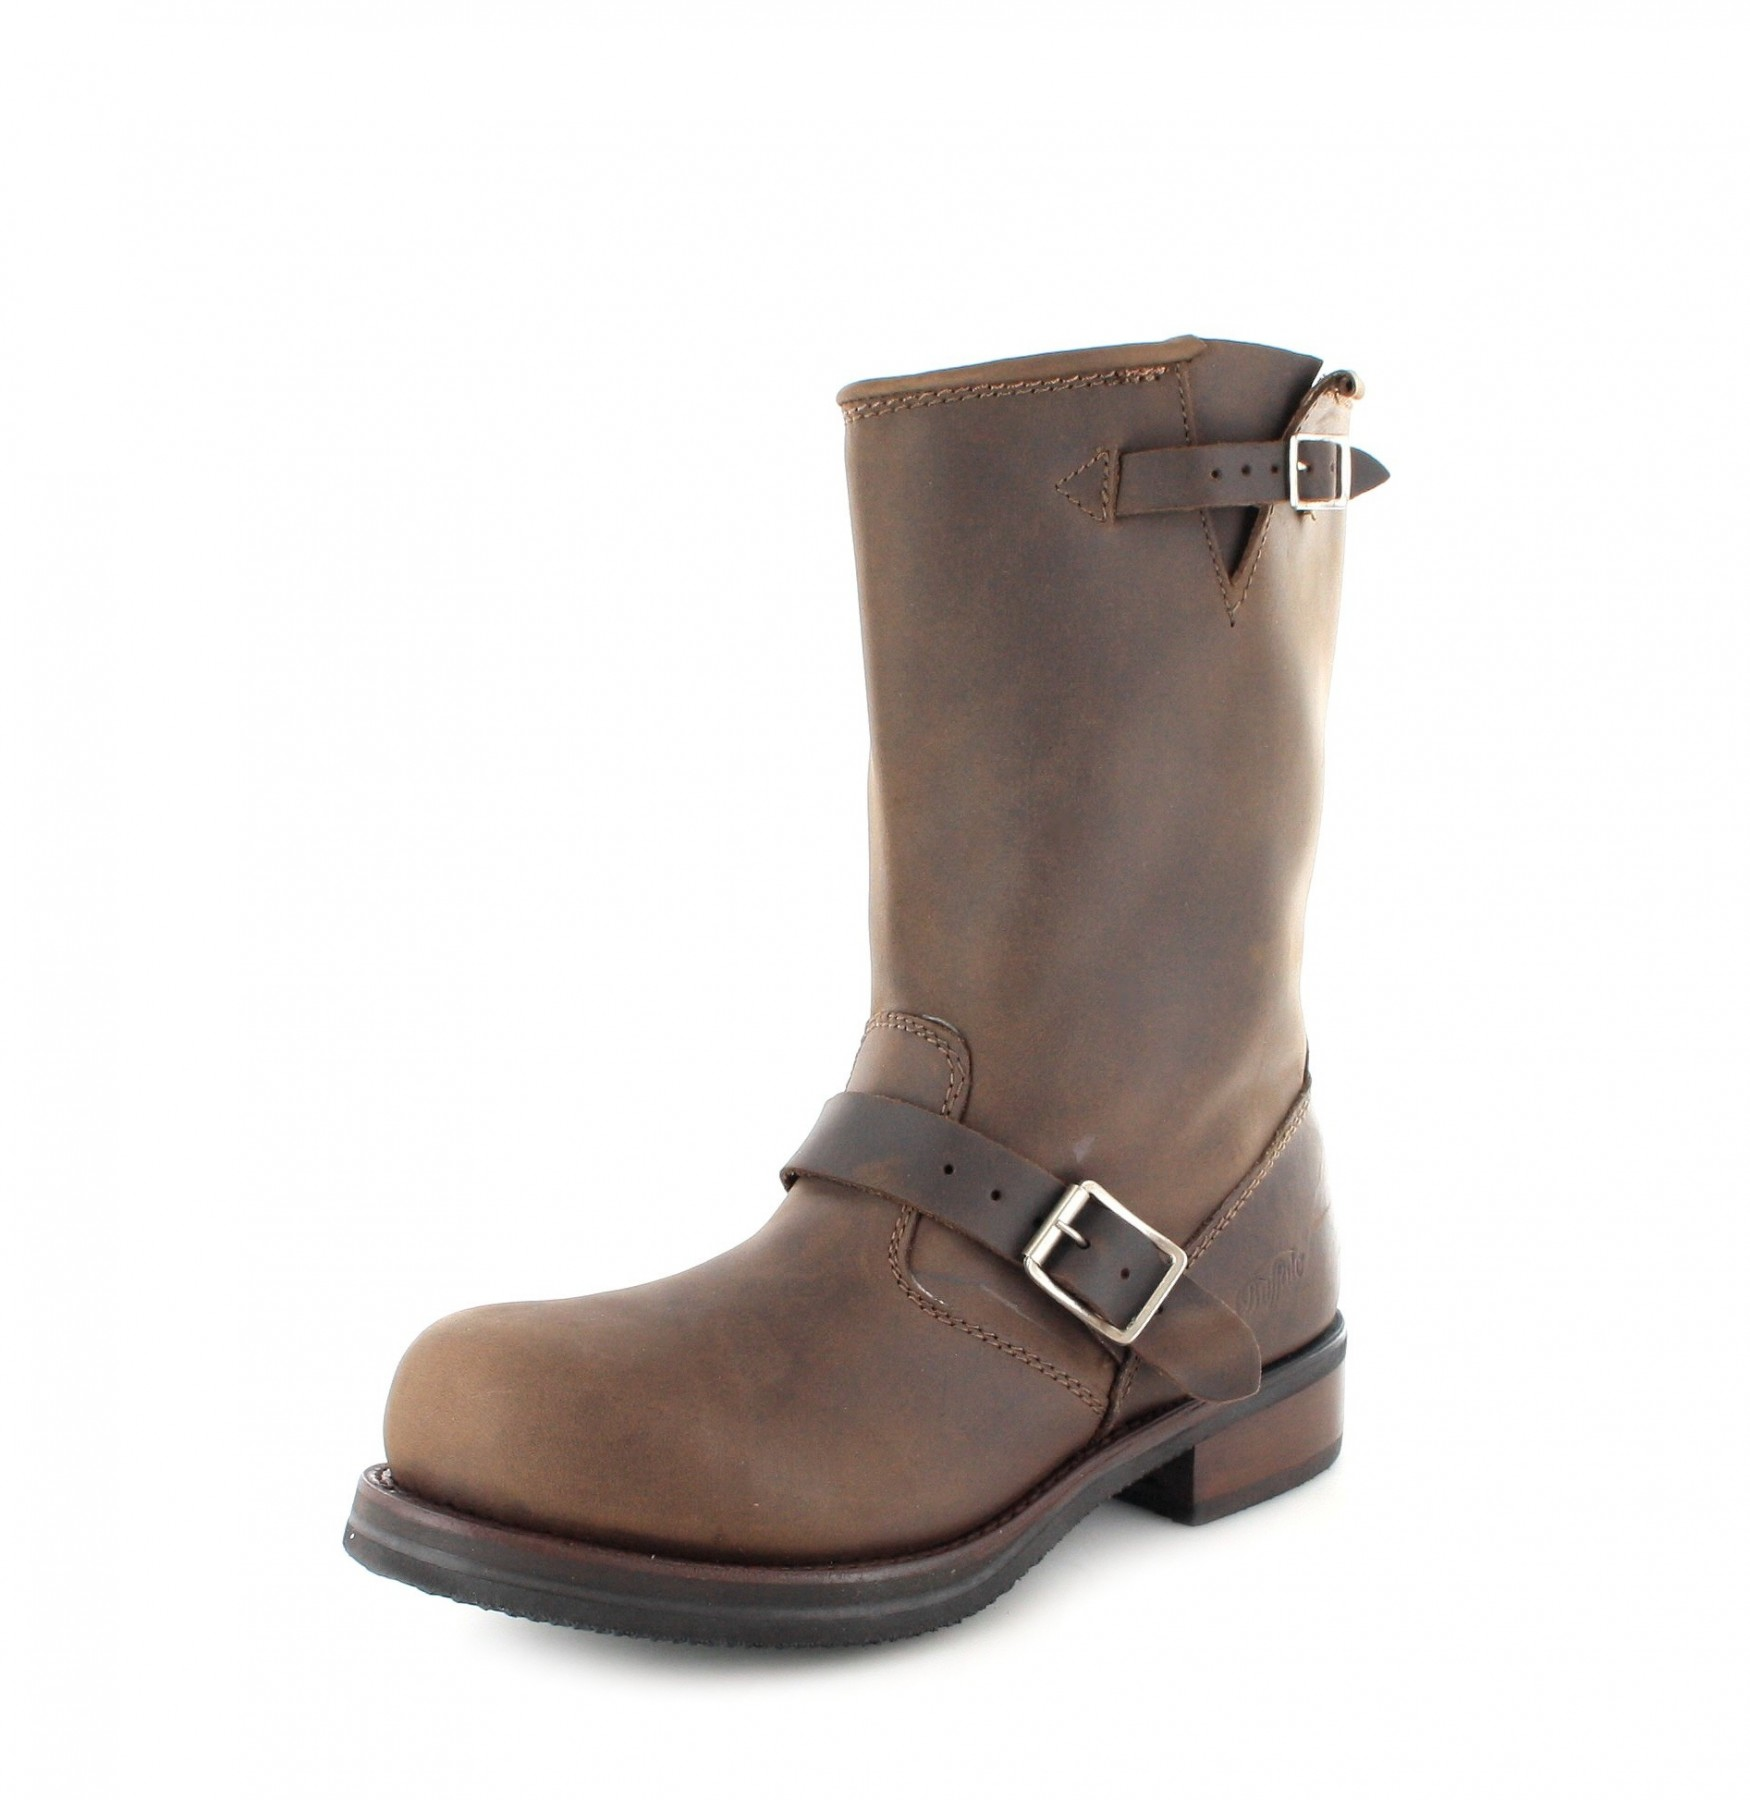 Buffalo Boots 1808-B Cactus Brown